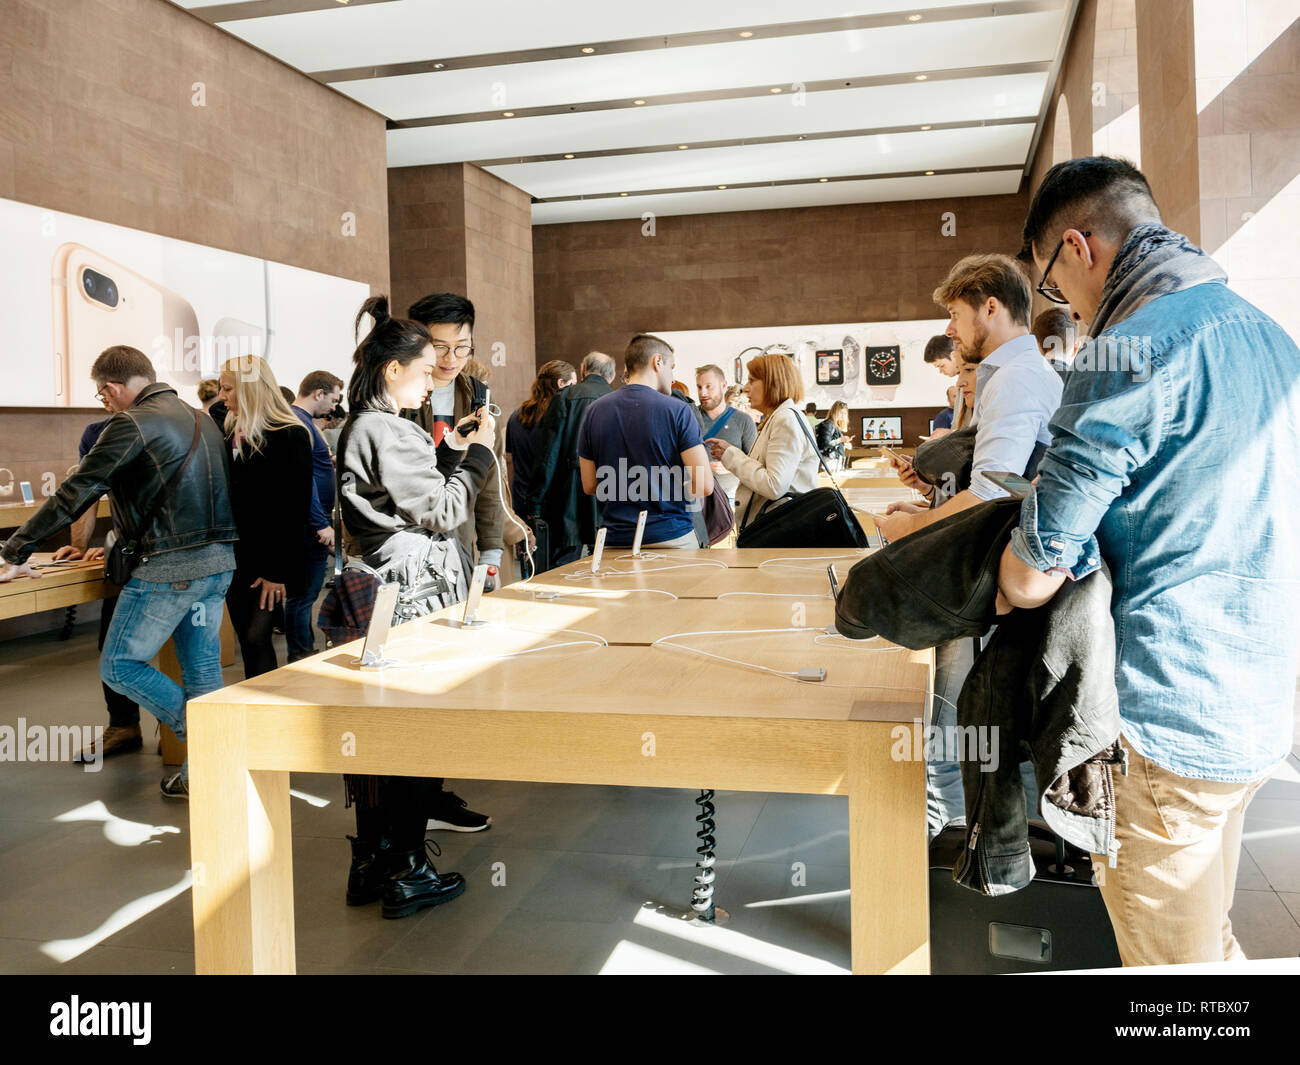 PARIS, FRANCE - SEP 22, 2017: New iPhone 8 and iPhone 8 Plus, as well the updated Apple Watch, Apple TV goes on sale today in Apple Store with customers trying the new iPhone and Apple Watch  Stock Photo